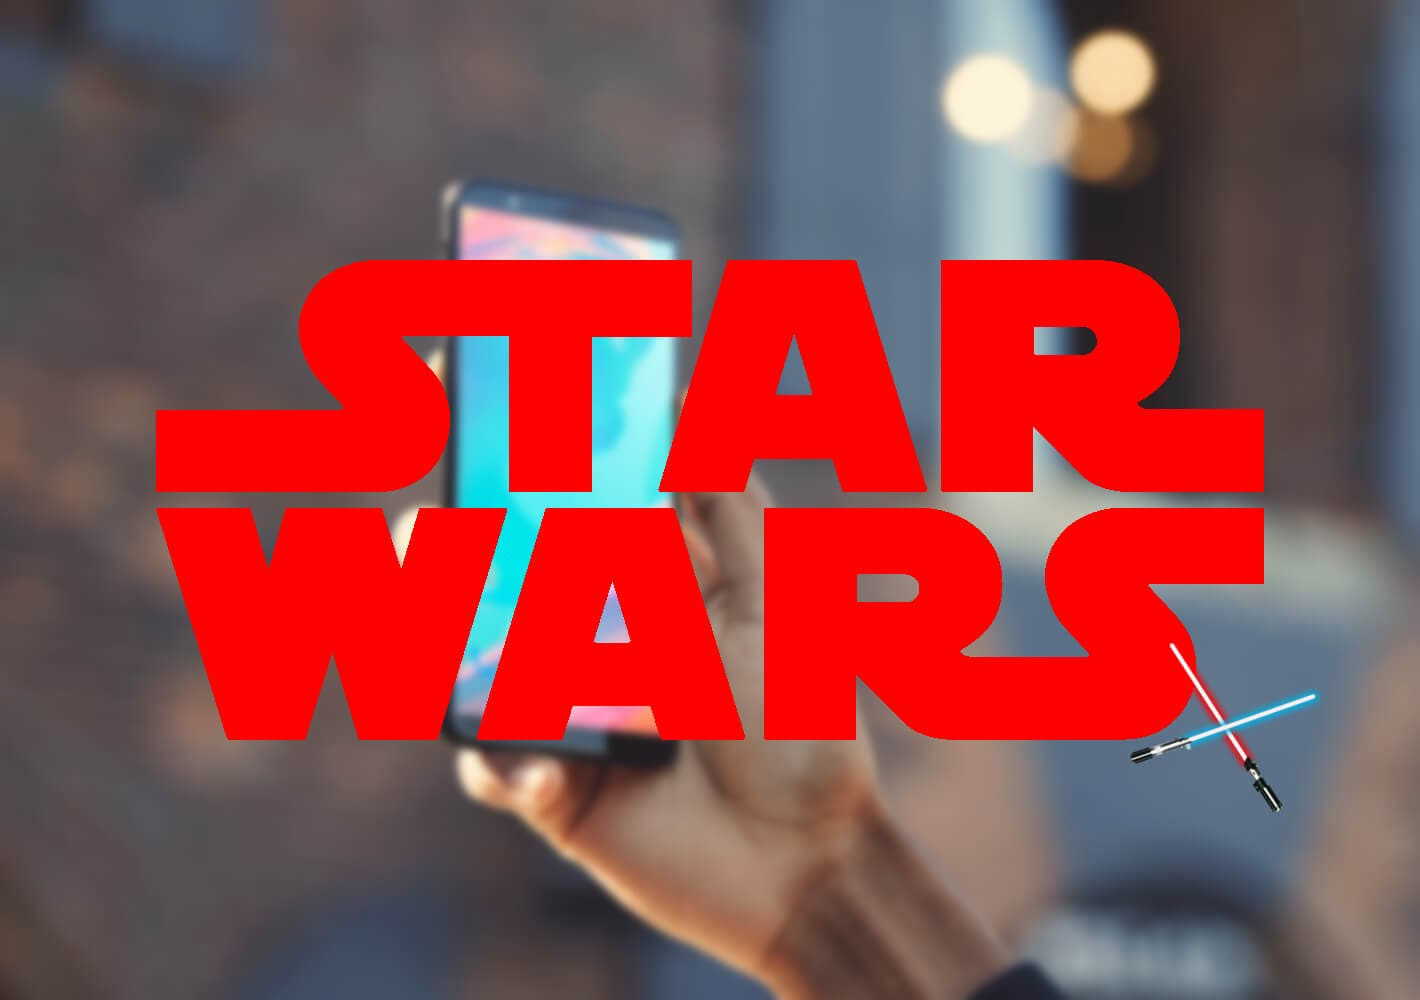 El OnePlus 5T Star Wars Edition ya es oficial en color blanco